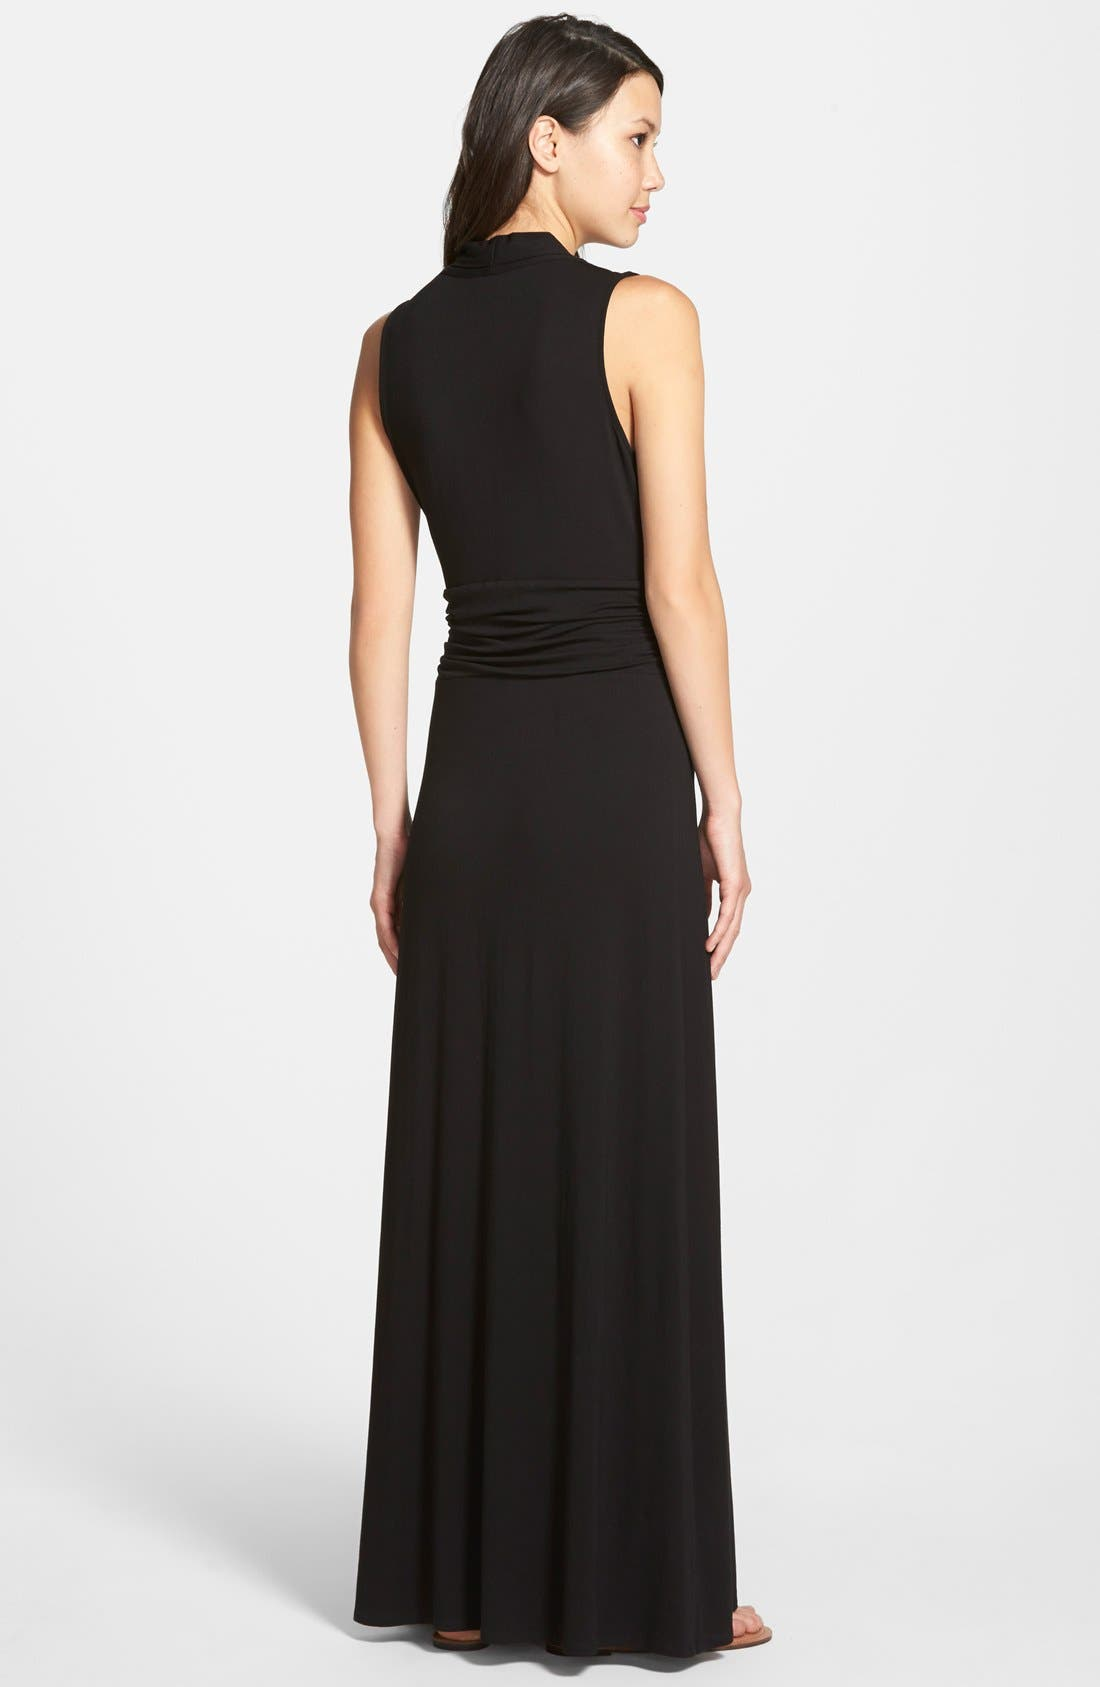 V-Neck Maxi Dress,                             Alternate thumbnail 9, color,                             RICH BLACK